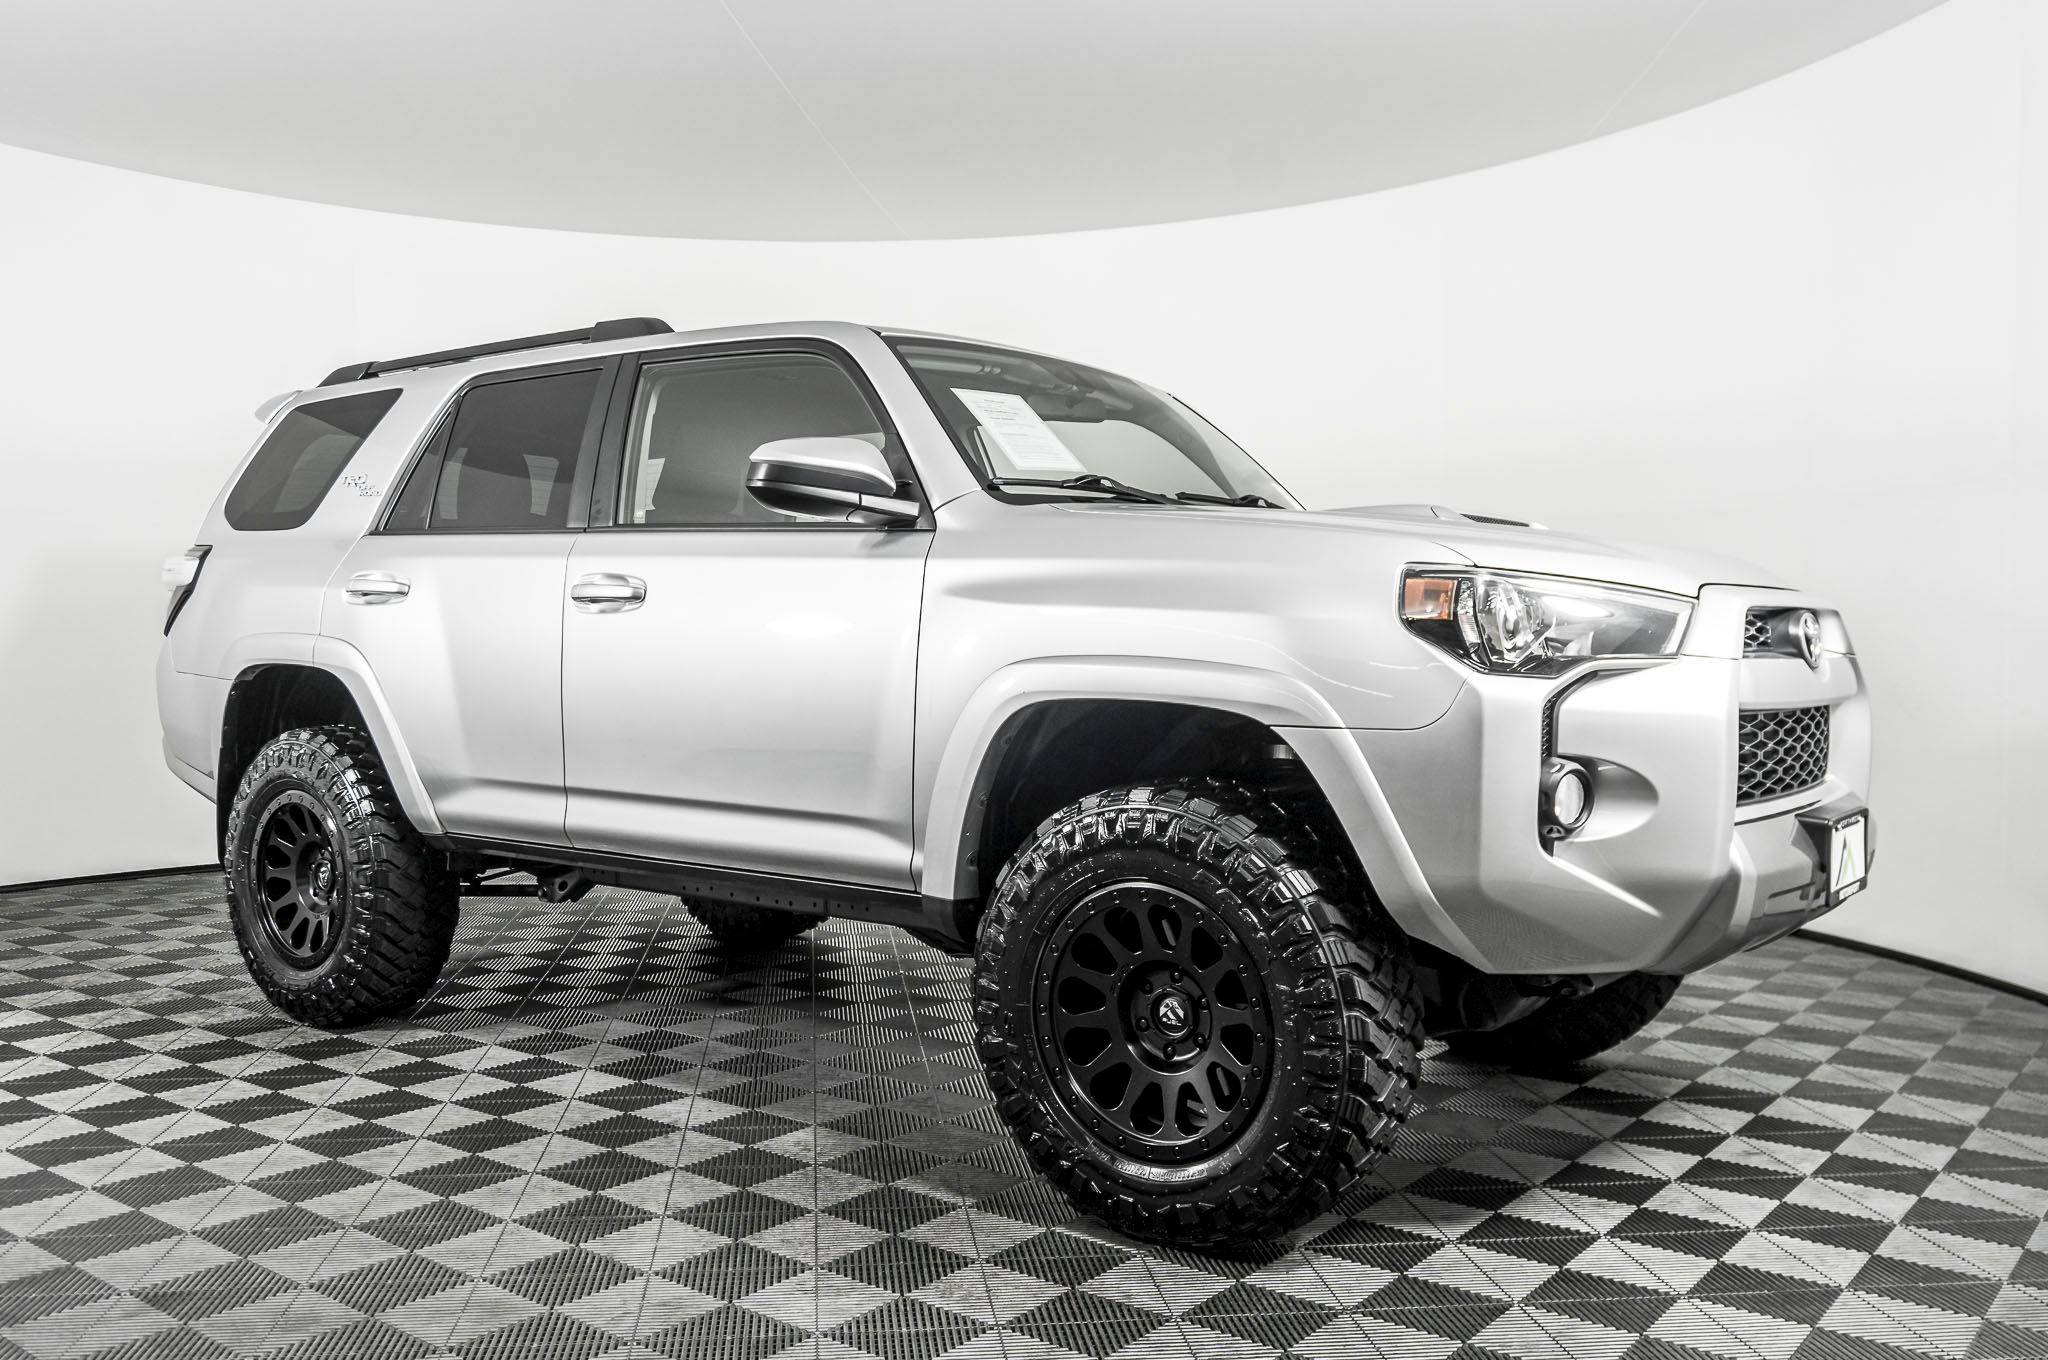 Used Lifted 2019 Toyota 4runner Trd Off Road 4x4 Suv For Sale Northwest Motorsport